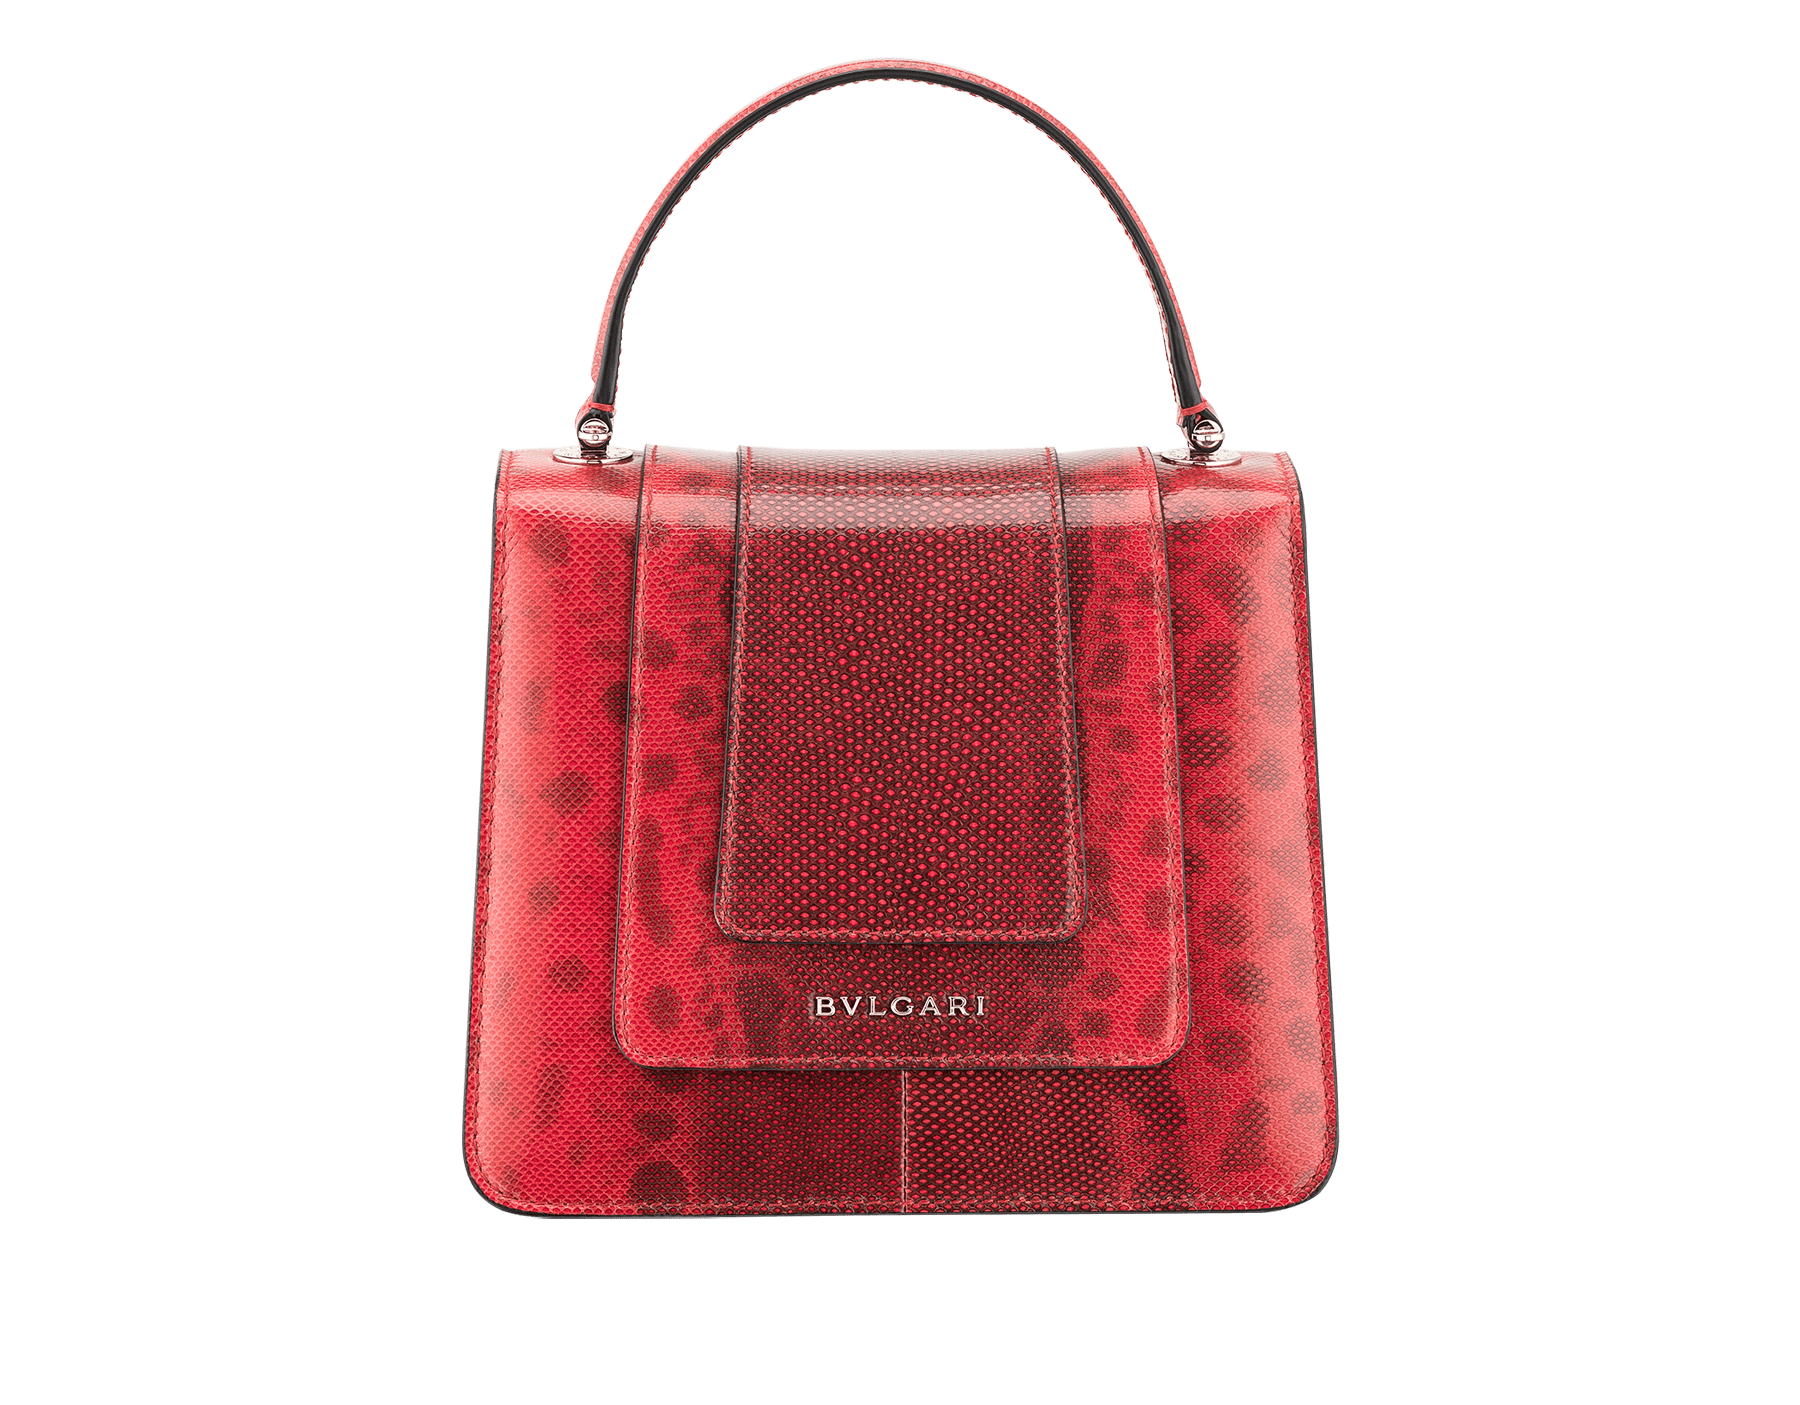 Serpenti Forever crossbody bag in sea star coral shiny karung skin. Snakehead closure in light gold plated brass decorated with black and white enamel, and green malachite eyes. 287915 image 3